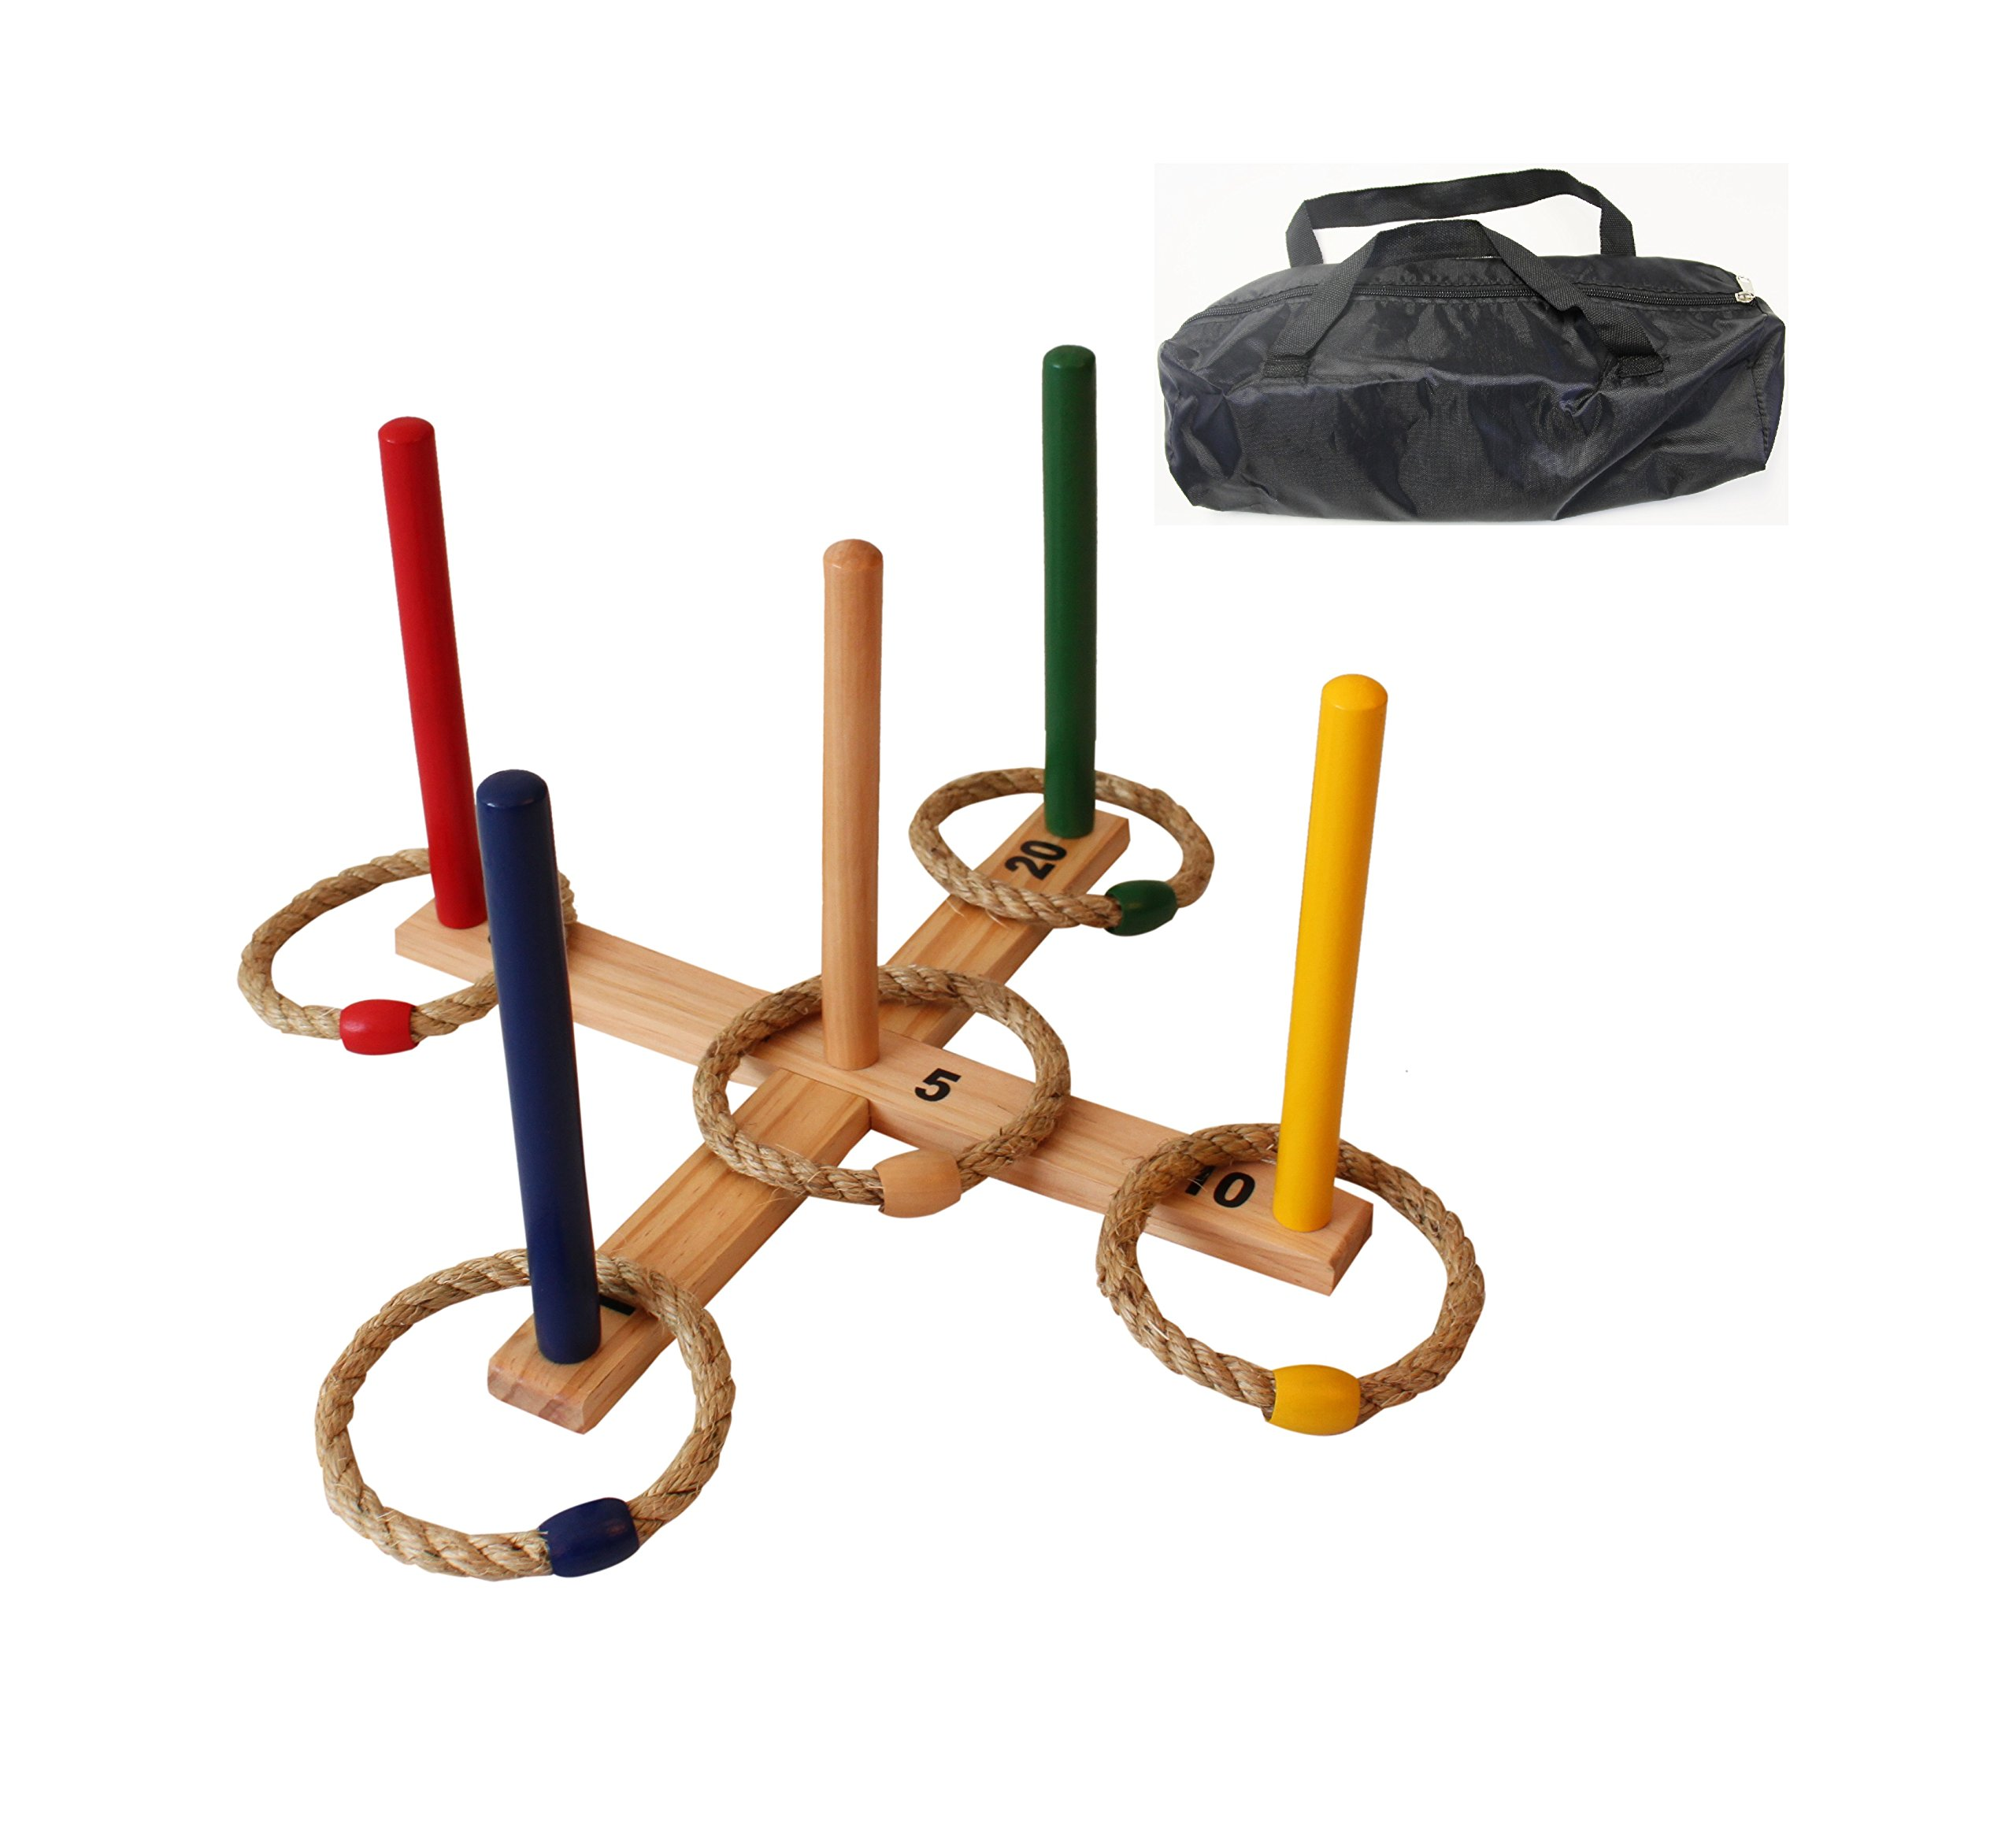 Oojami Ring Toss Game - Children's or Family Outdoor Quoits Game - Compact Carry Bag Included by Oojami